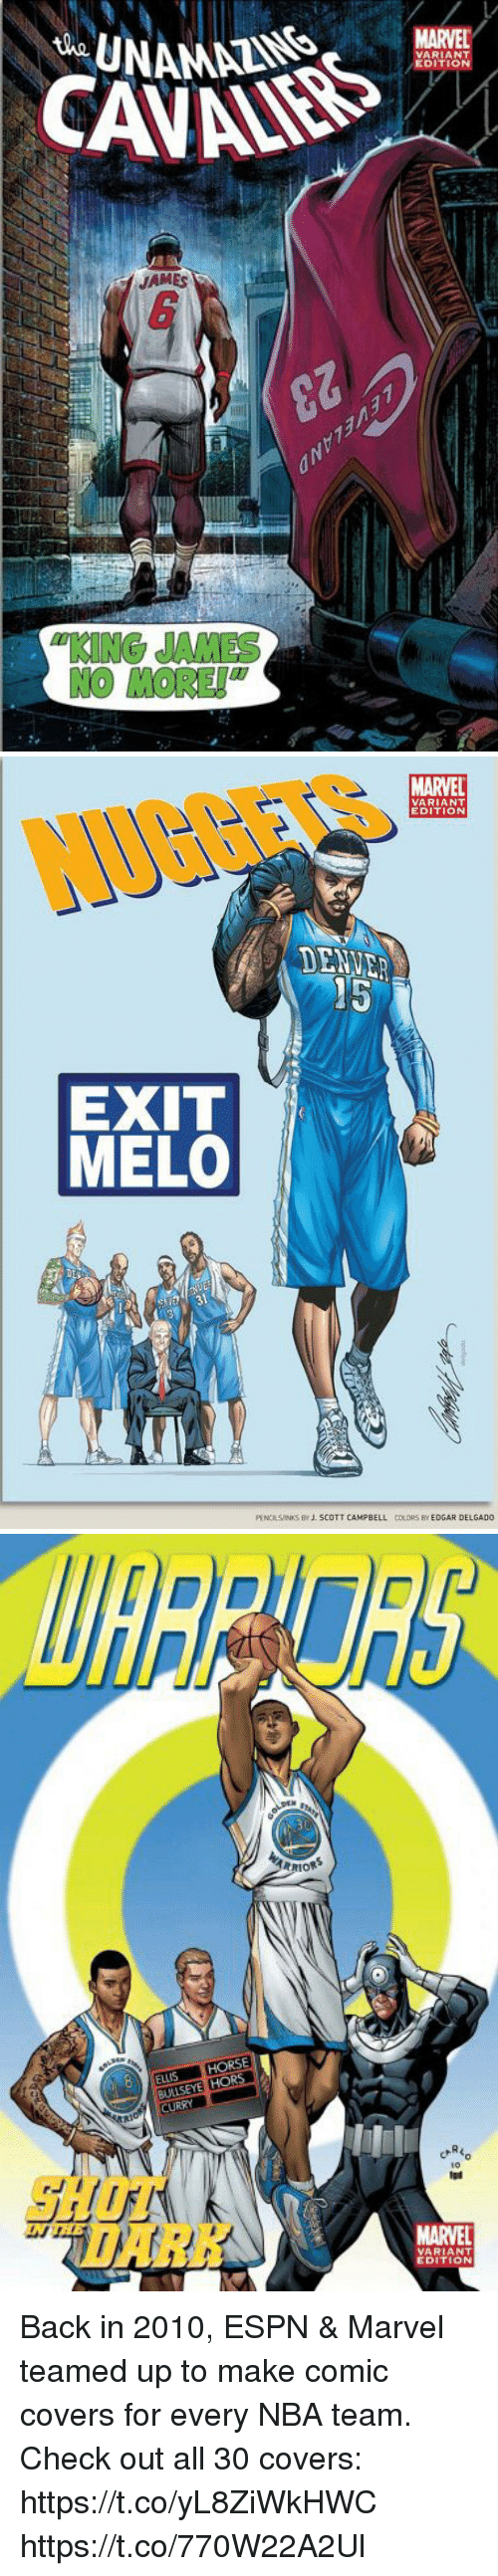 """Espn, Memes, and Nba: MARVEL  JAMES  """"KING JAMES  NO MORE!   MARVEL  VARIANT  EDITION  NUGGETS  DENUE  15  EXIT  MELO  PENOLSINKS BY J. SCOTT CAMPBELL  COLORS RY EDGAR DELGADO   RRIOR  ELLIS HORSE  CURRY  """"DARK. """"  MARVEL  6  8  EDITION Back in 2010, ESPN & Marvel teamed up to make comic covers for every NBA team.   Check out all 30 covers: https://t.co/yL8ZiWkHWC https://t.co/770W22A2Ul"""